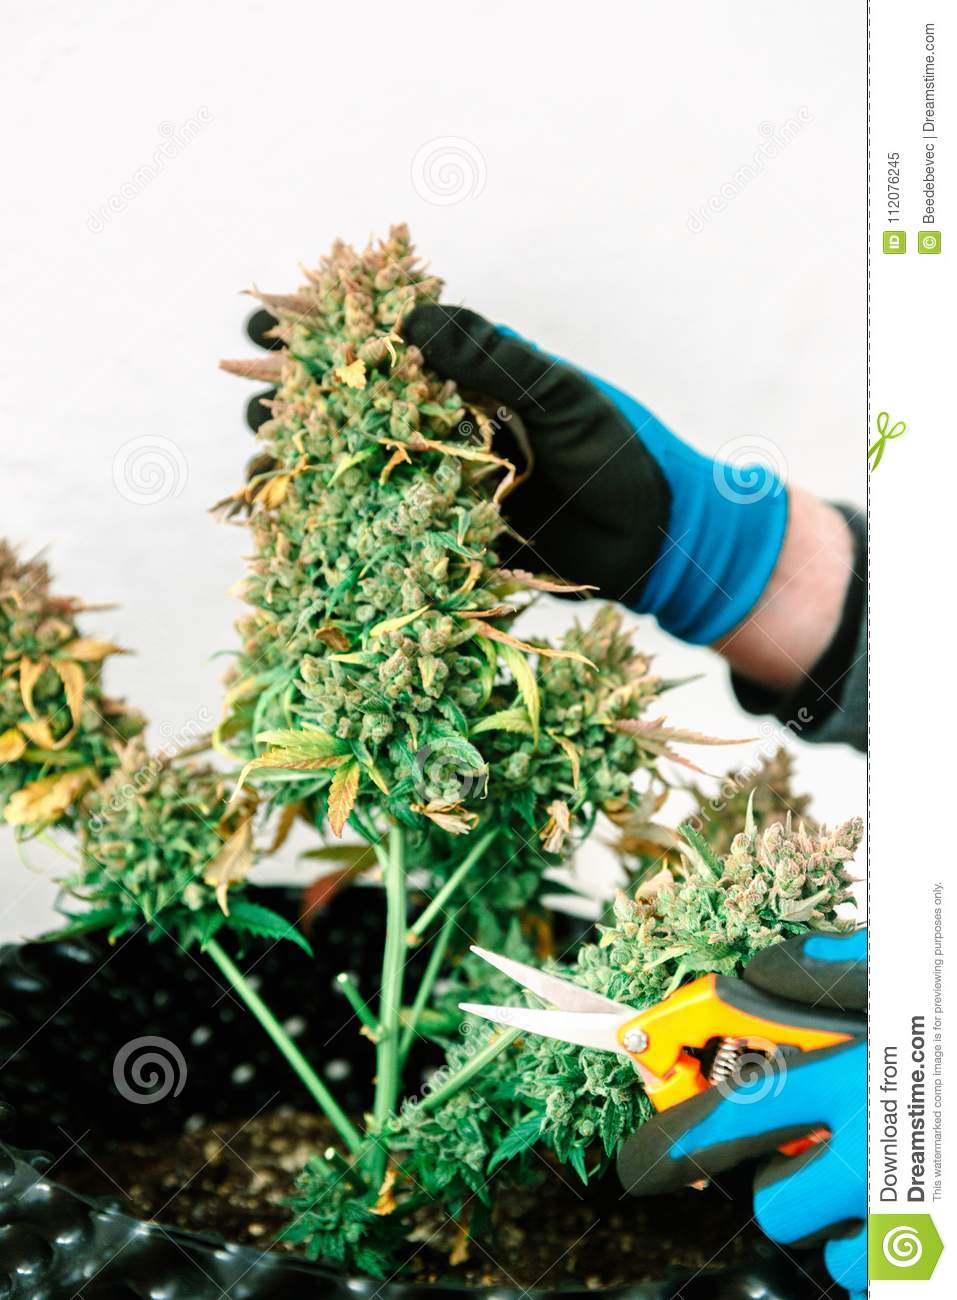 Scissors Trimming Mature Indoor Marijuana Bud For Harvest ... |Harvesting Marijuana Scissors